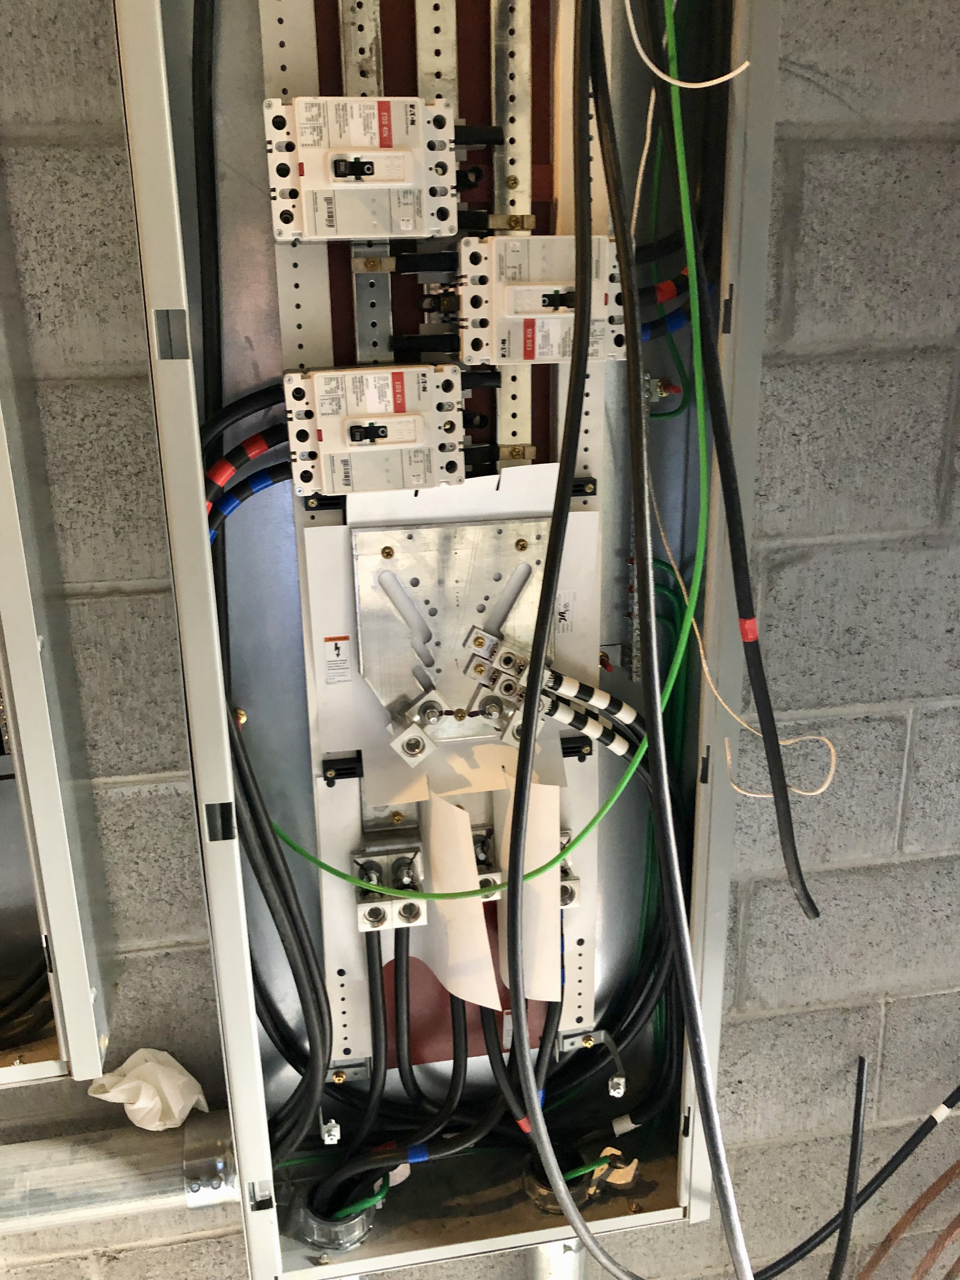 This is the main distribution panel inside. Power comes in the bottom and then is split via the three breakers to the house, the dirty power for the new space and the clean power for the new space.